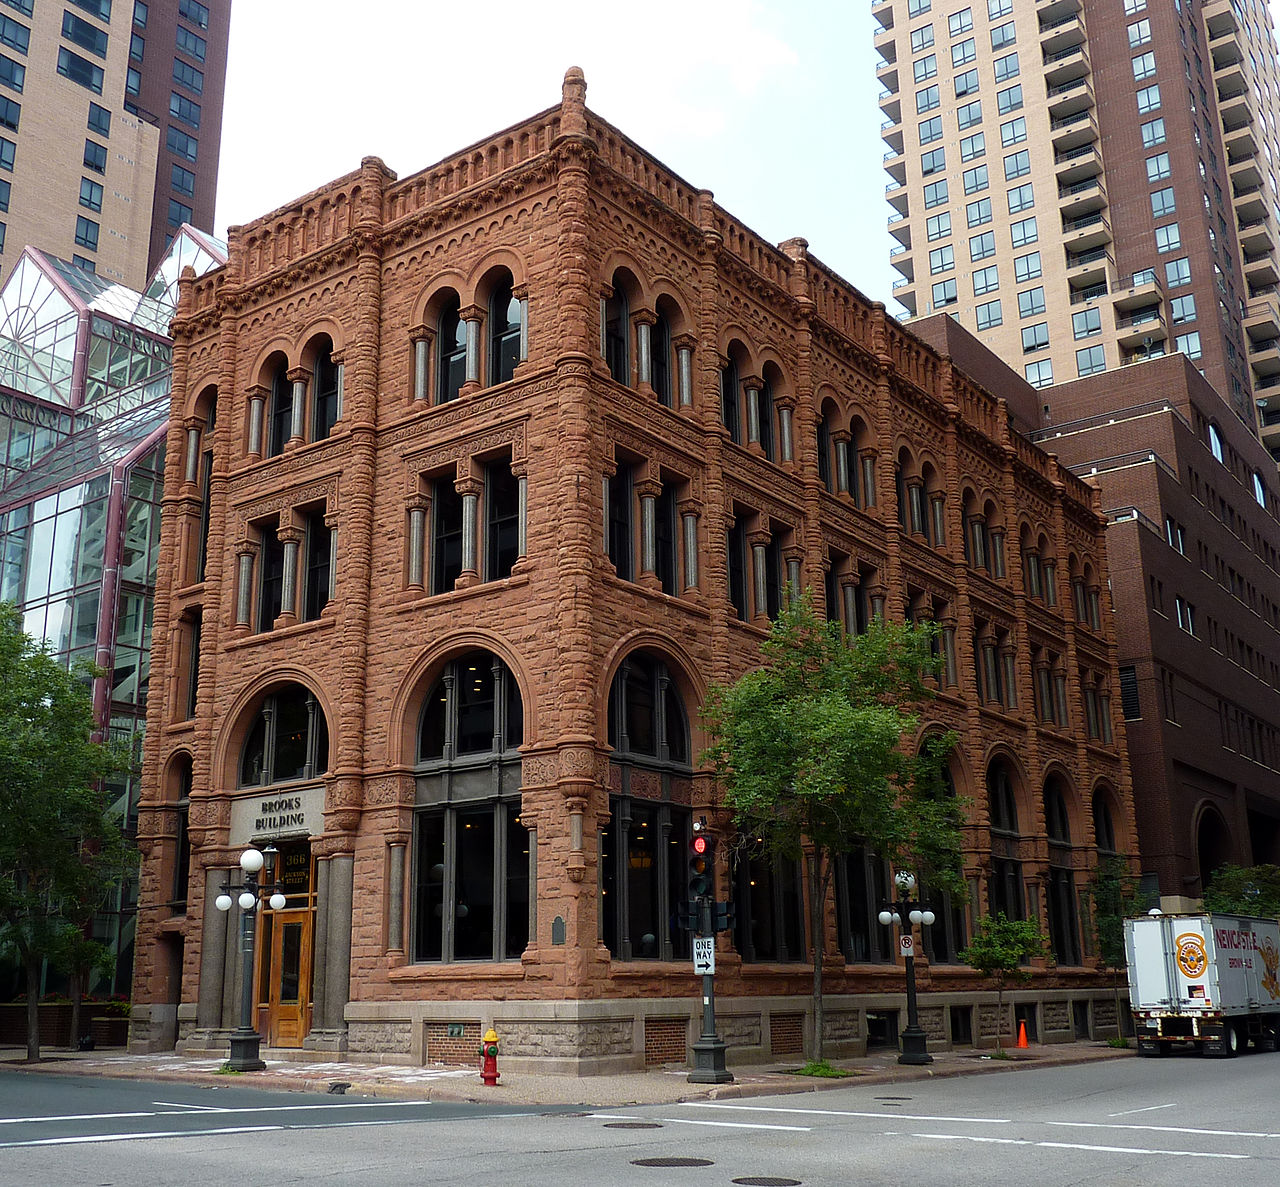 The Brooks Building, as it is known today, was built in 1892 and is significant in terms of architecture as well as economic and political history.